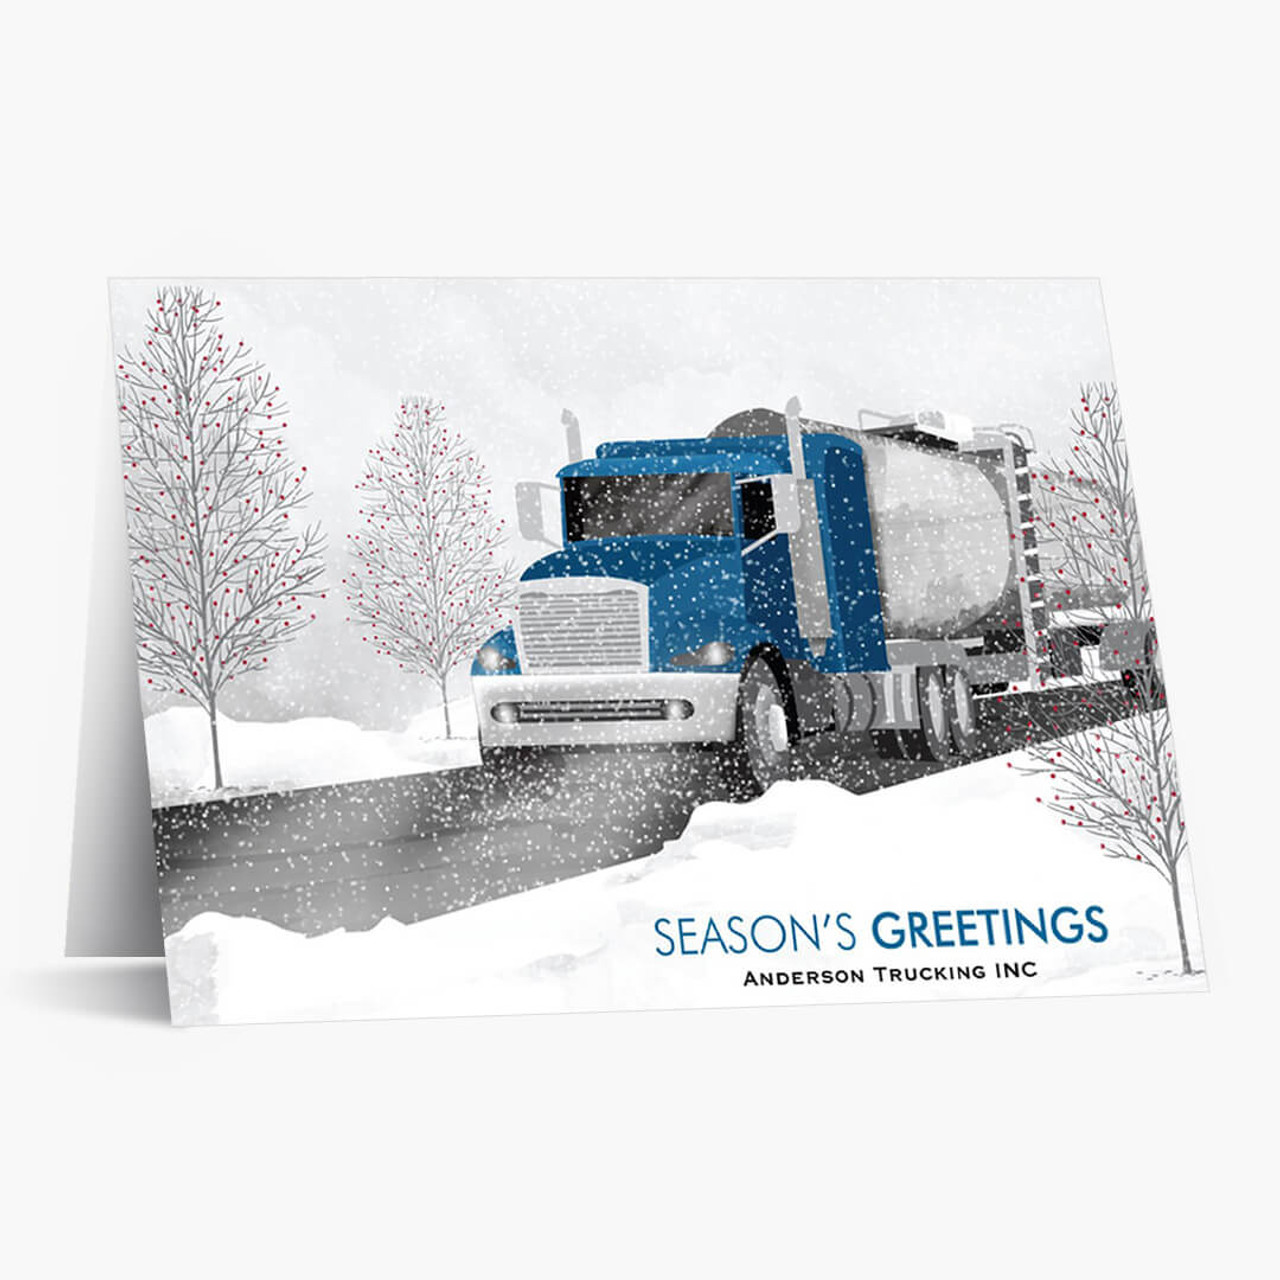 Blue Cab Tanker Truck Christmas Card